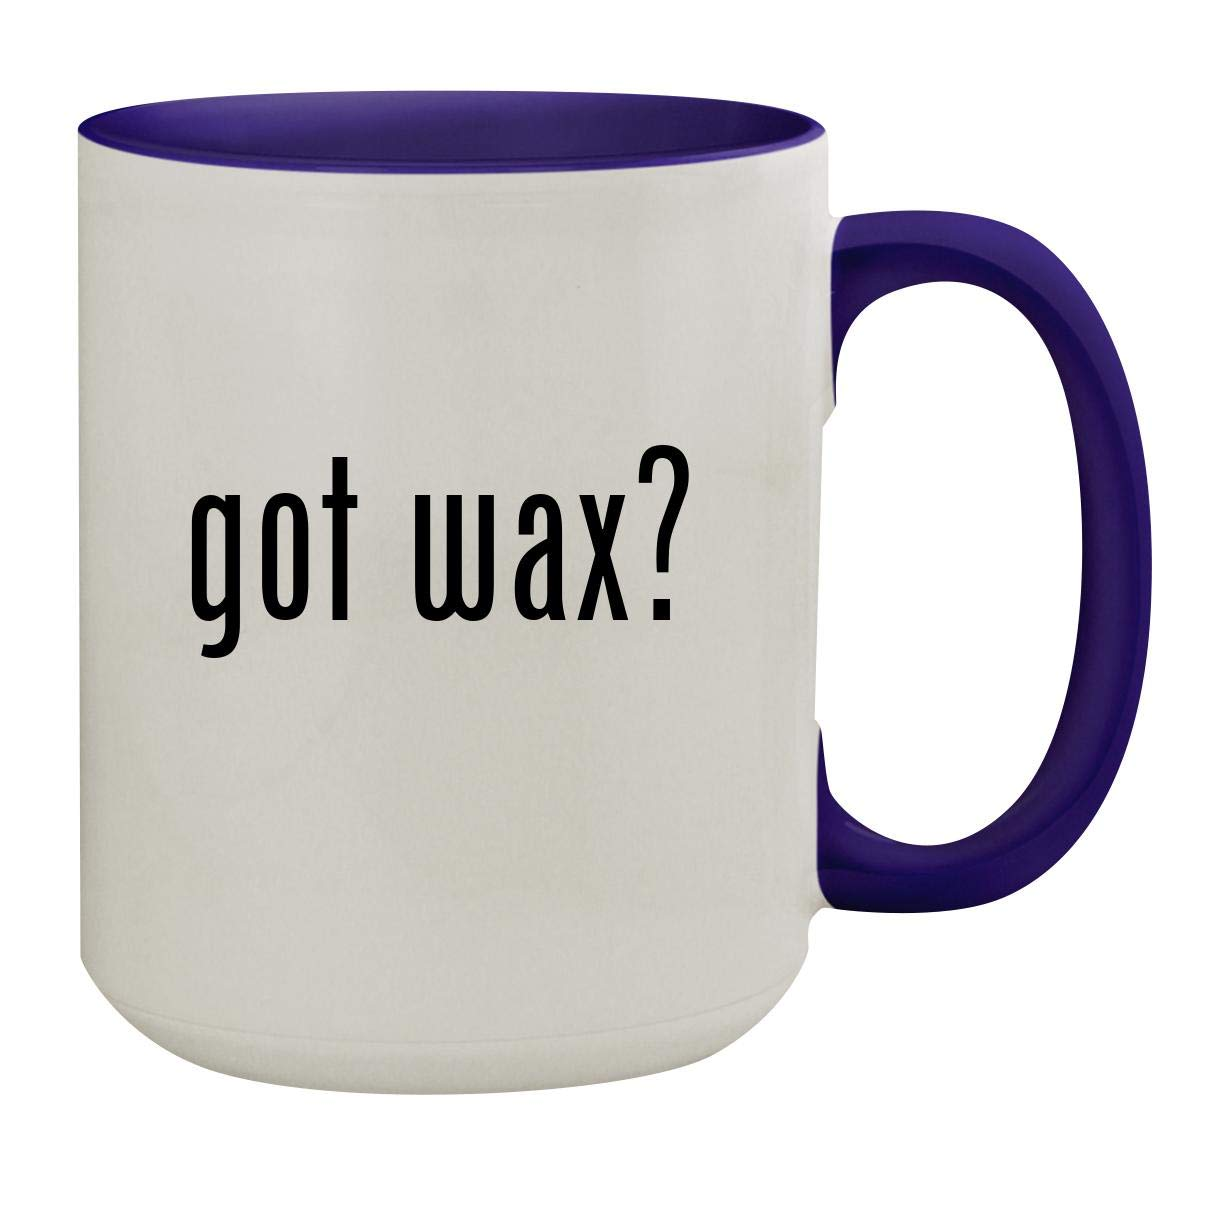 got wax? - 15oz Ceramic Inner & Handle Colored Coffee Mug, Deep Purple